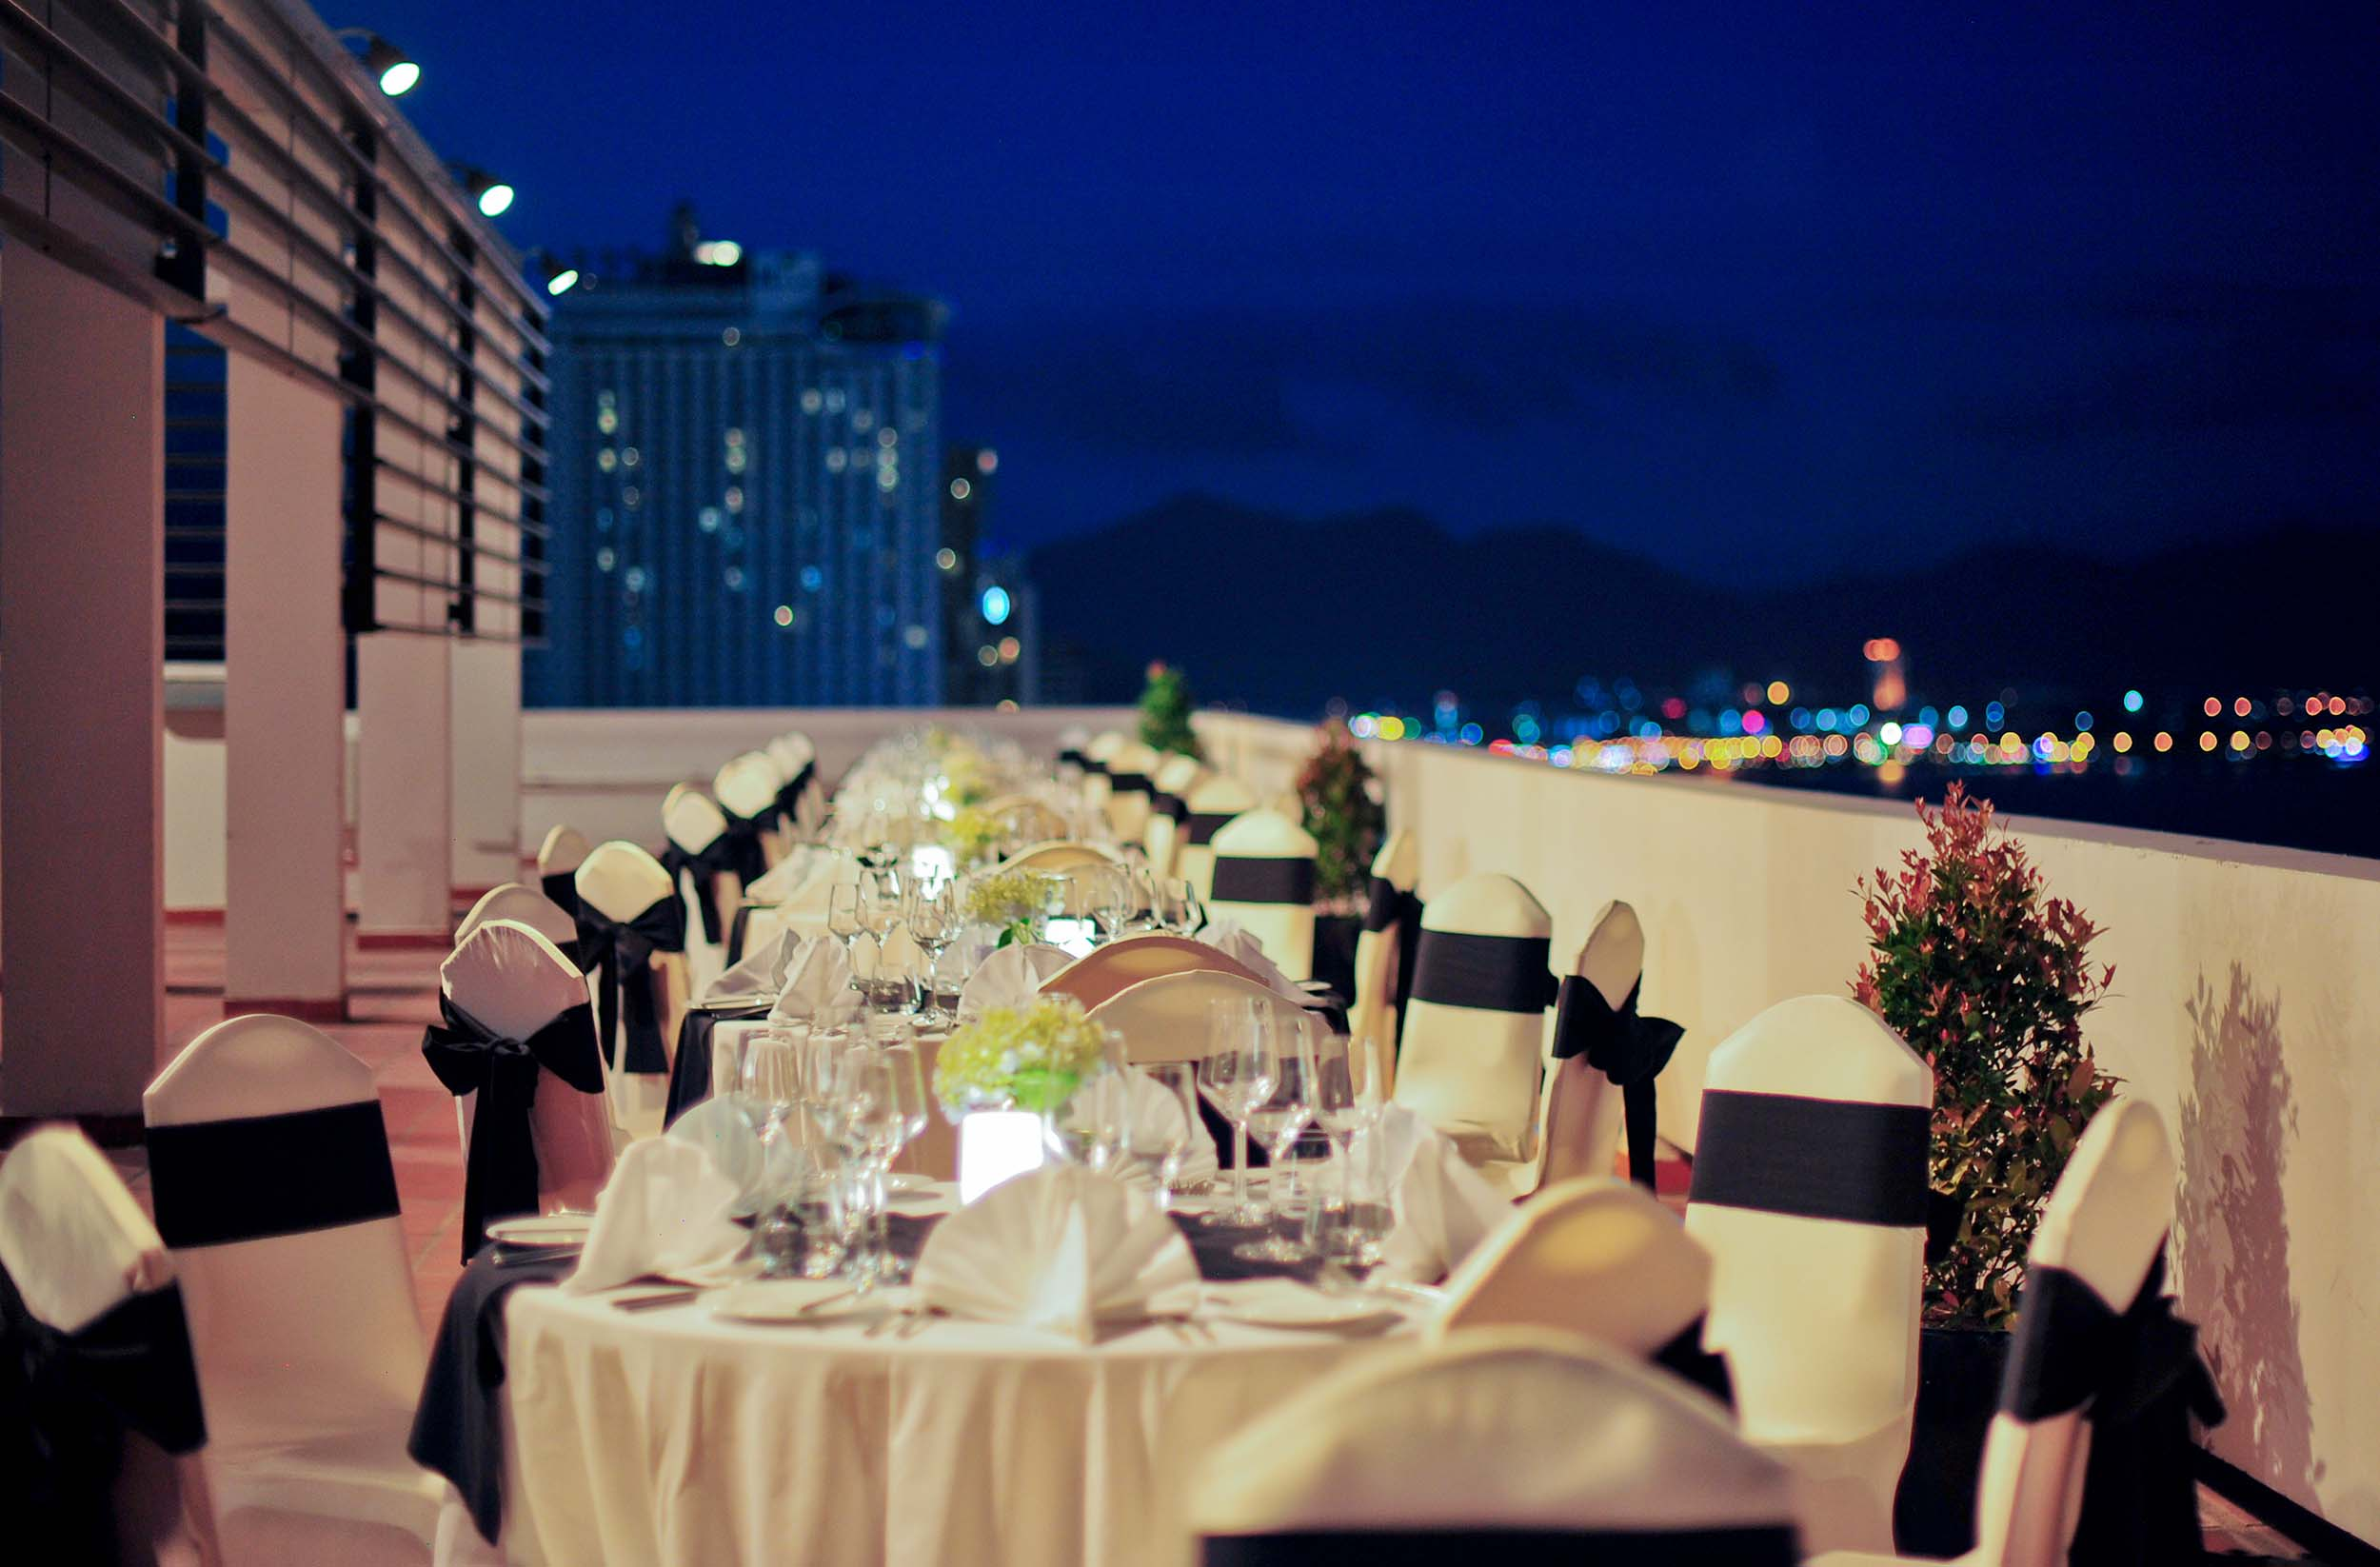 BBQ dinner and stylish afternoon tea at Novotel Nha Trang